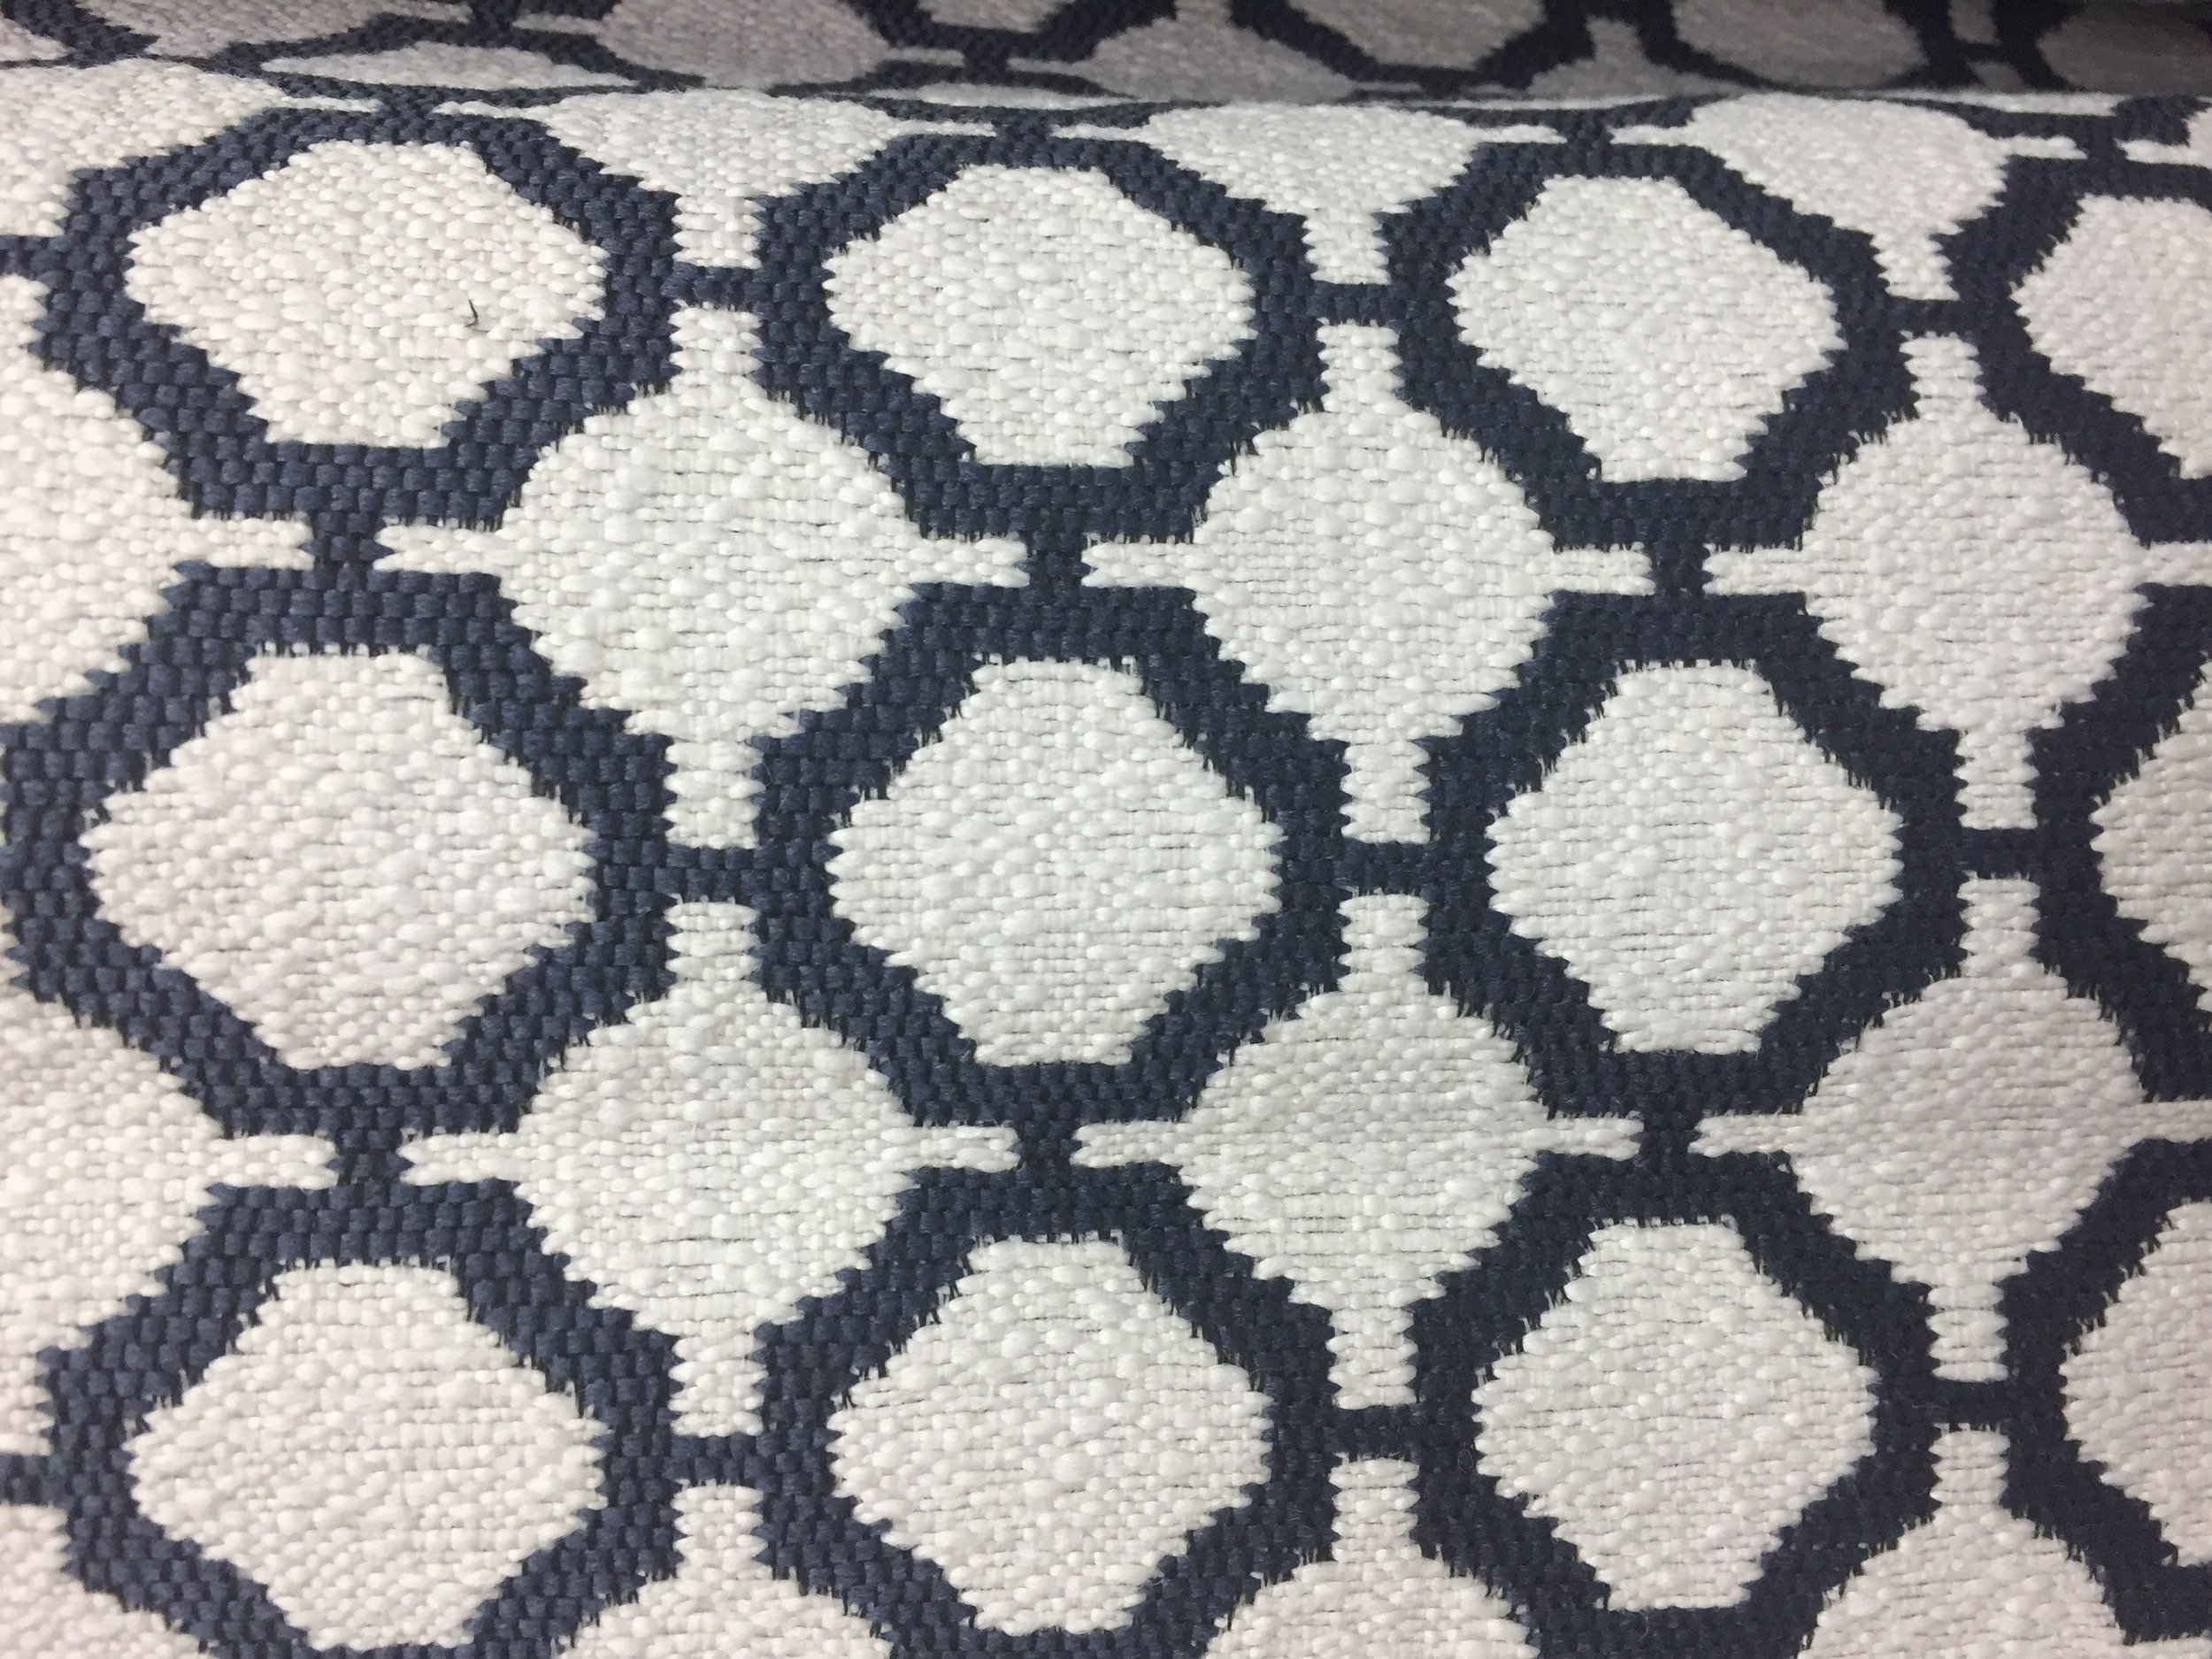 Above: The final product! A Revolution jacquard